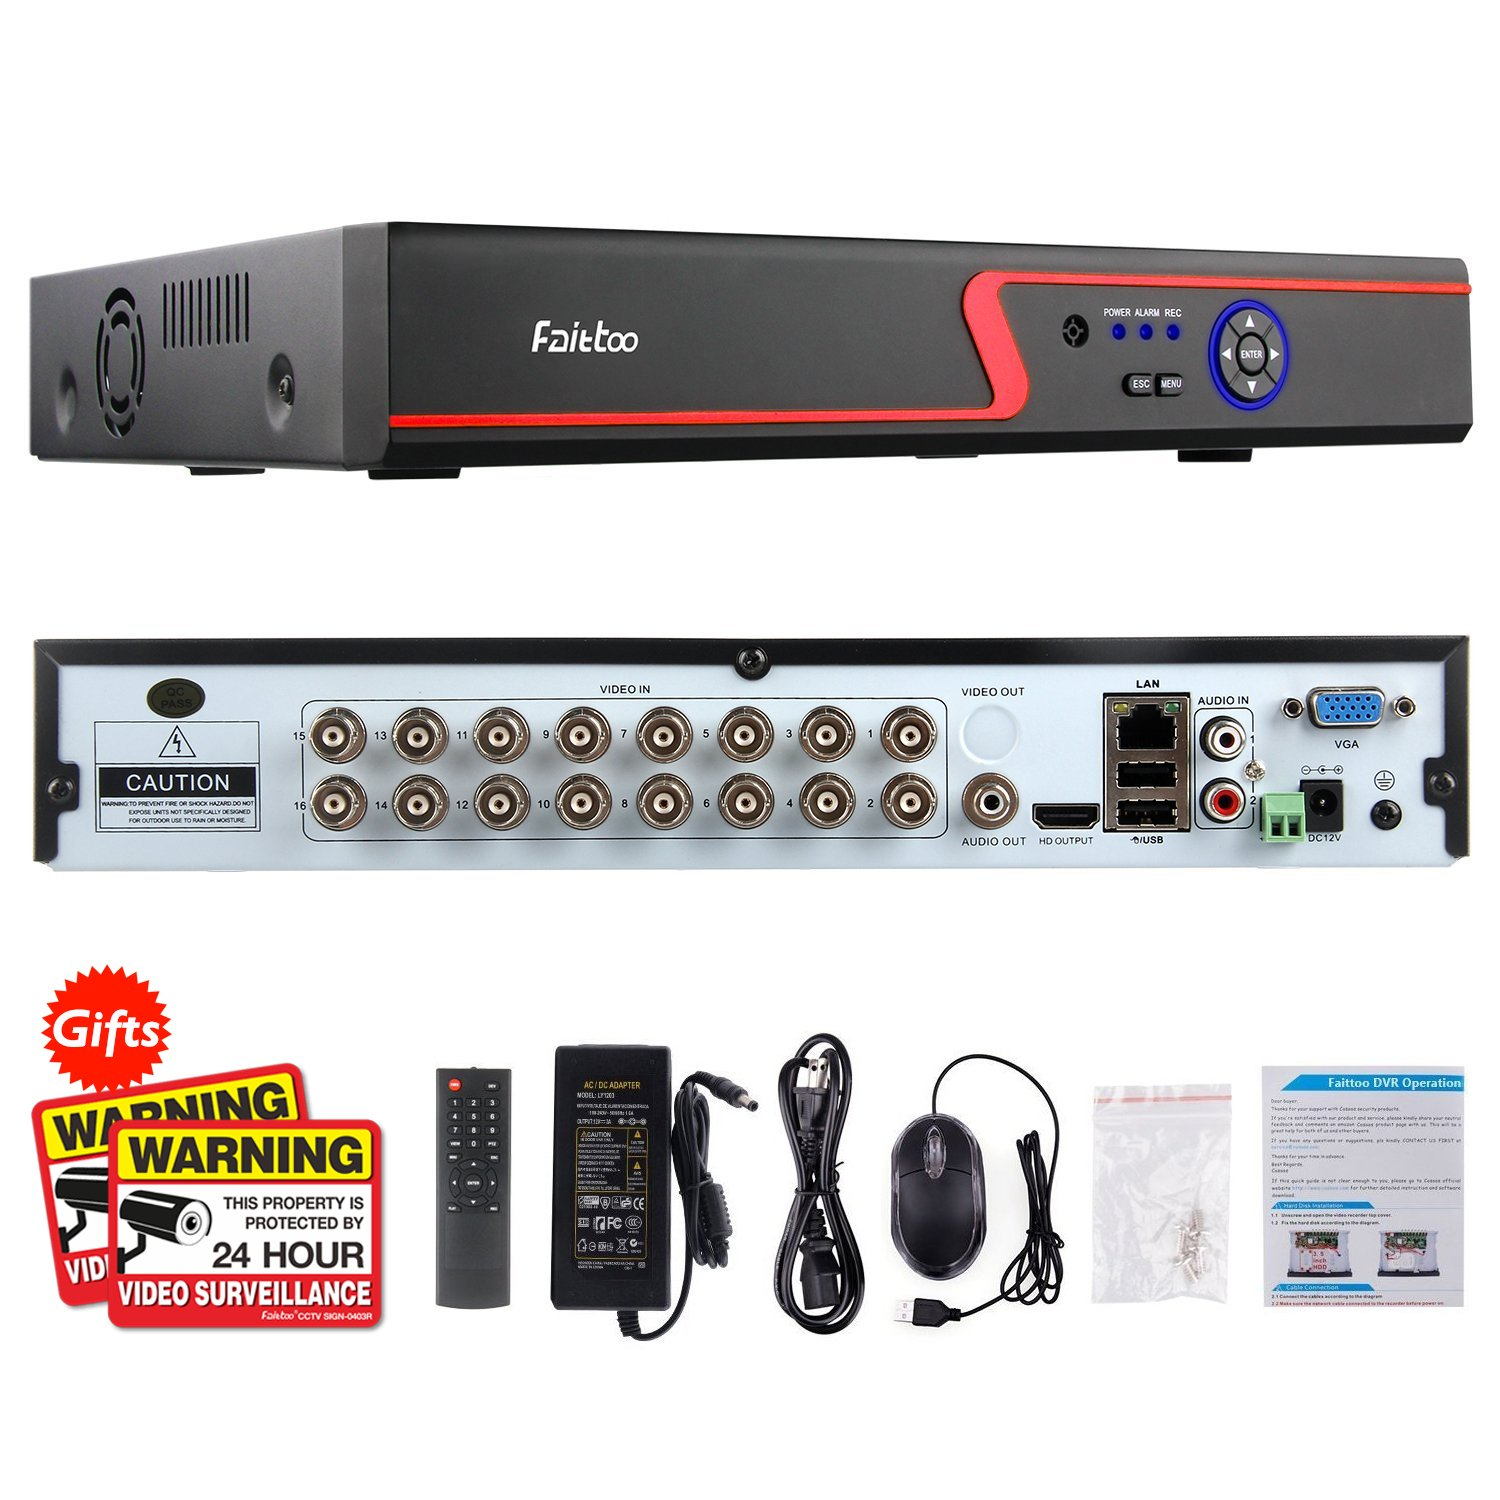 Faittoo H.264 16CH 1080N AHD DVR Hybrid AHD+HVR+TVI+CVI+NVR 5-in-1 Security System Realtime Standalone CCTV Surveillance Onvif P2P Quick QR Code Scan w/Easy Remote View HDMI/VGA Output (No HDD)